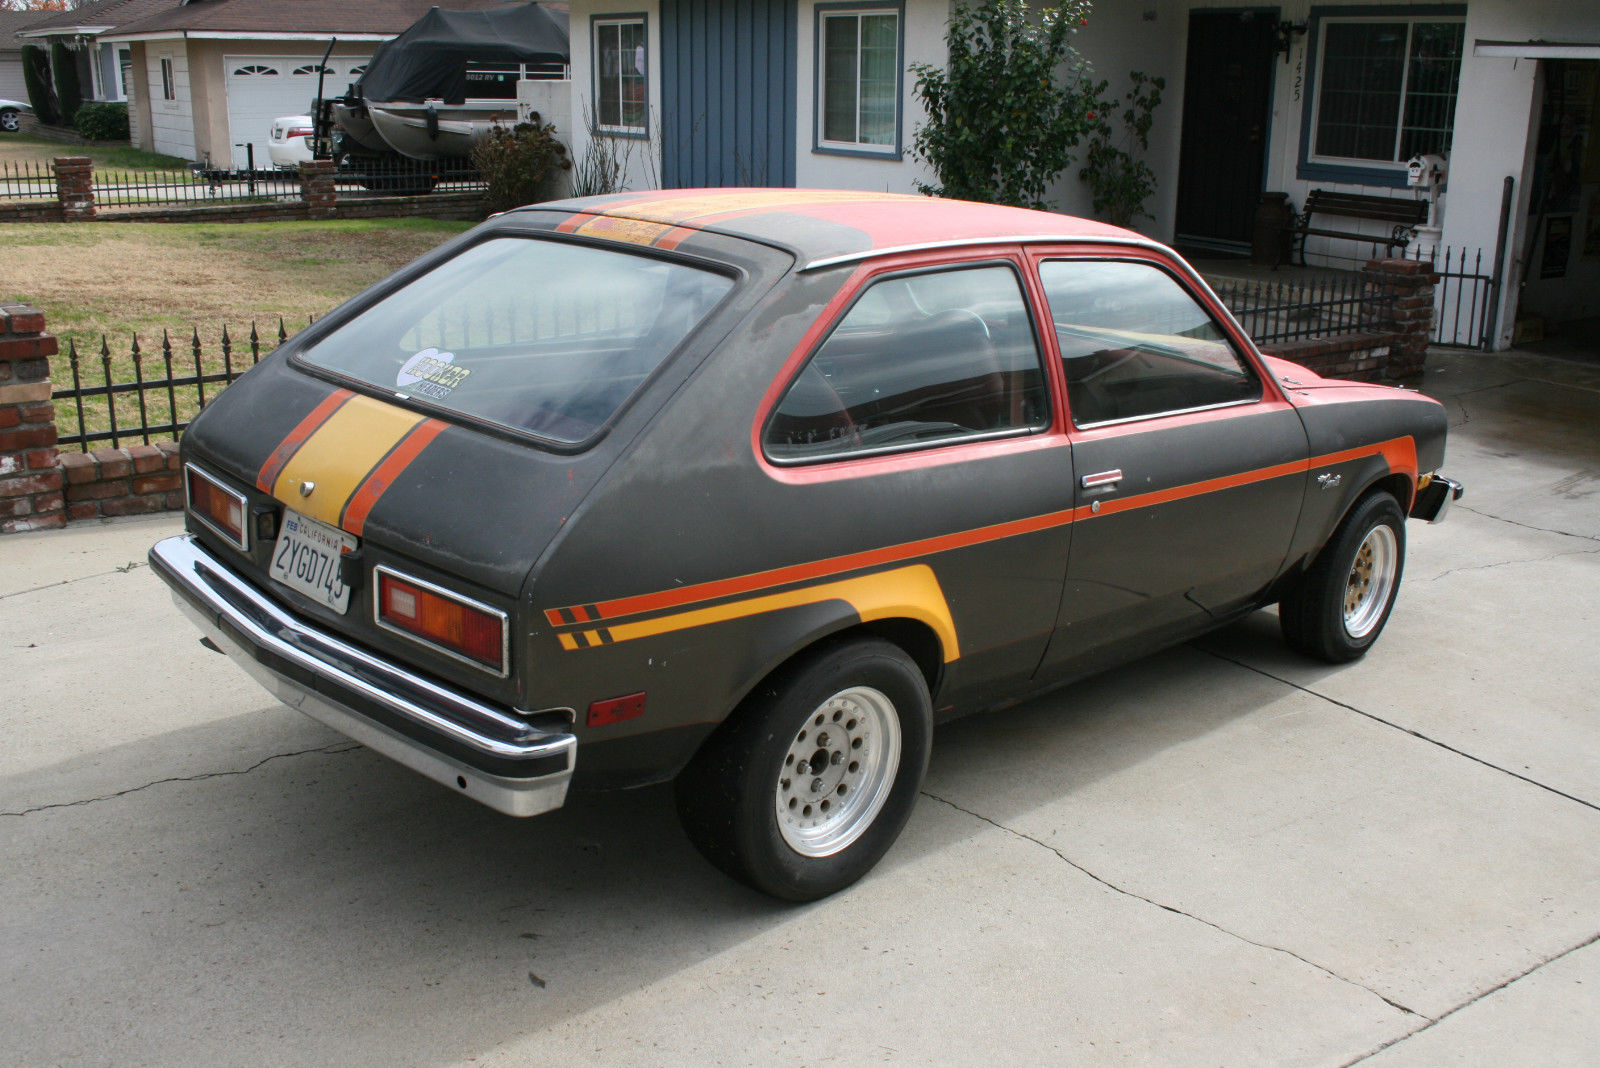 1976 Chevy Chevette Hooker Headers Project Car Hot Rod ...